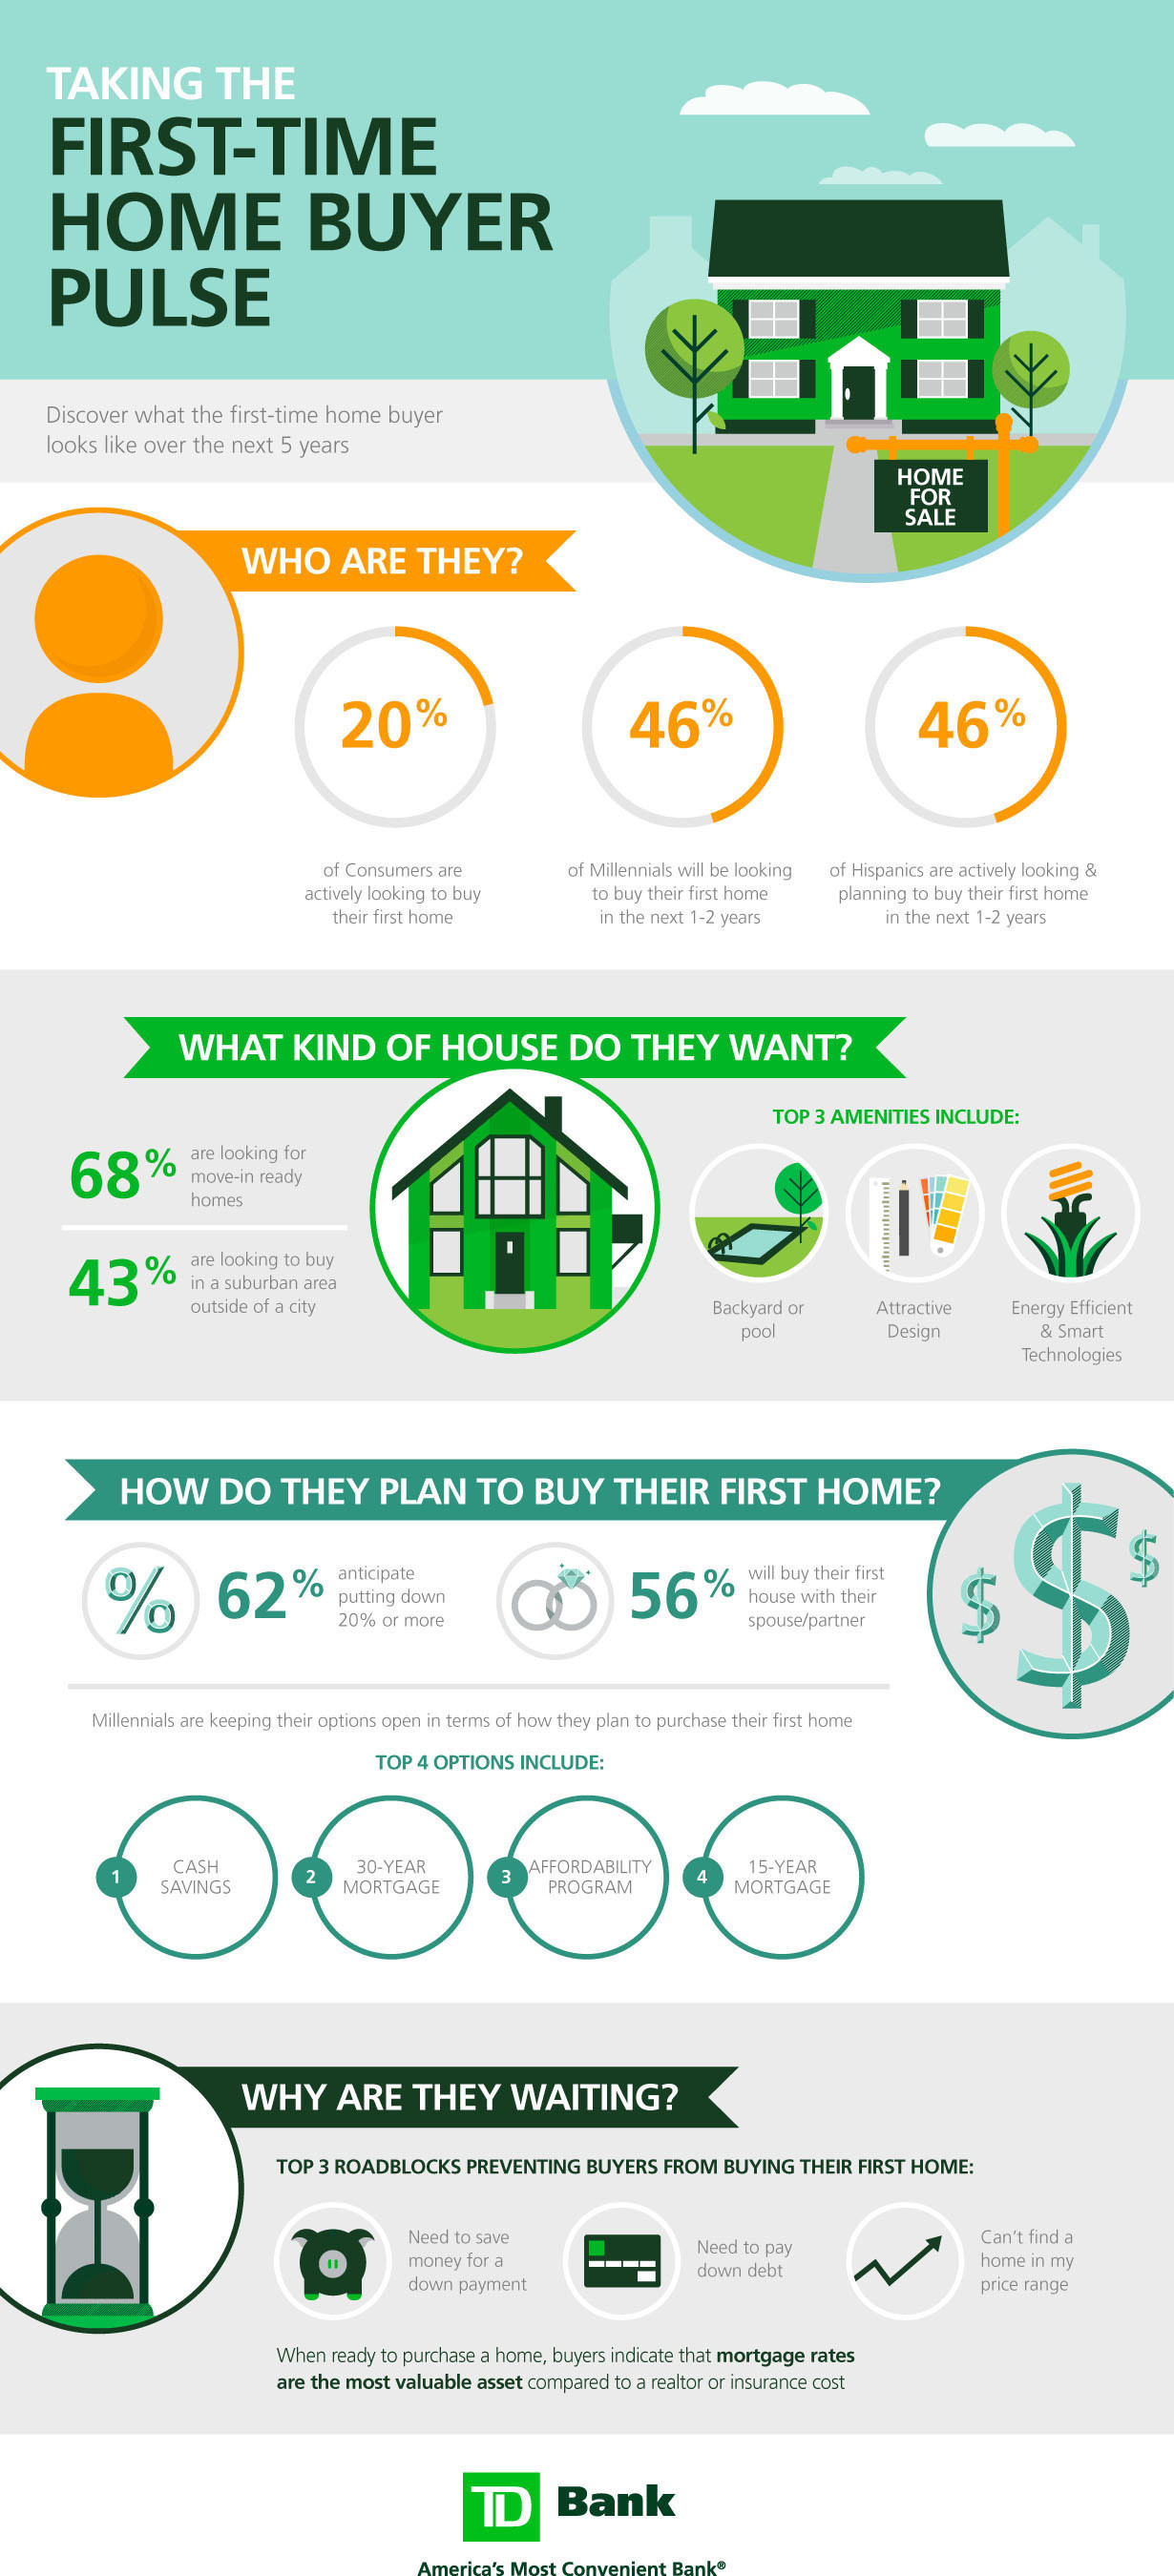 Discover what the first-time home buyer looks like over the next five years with TD Bank's First-Time Home Buyer Pulse.